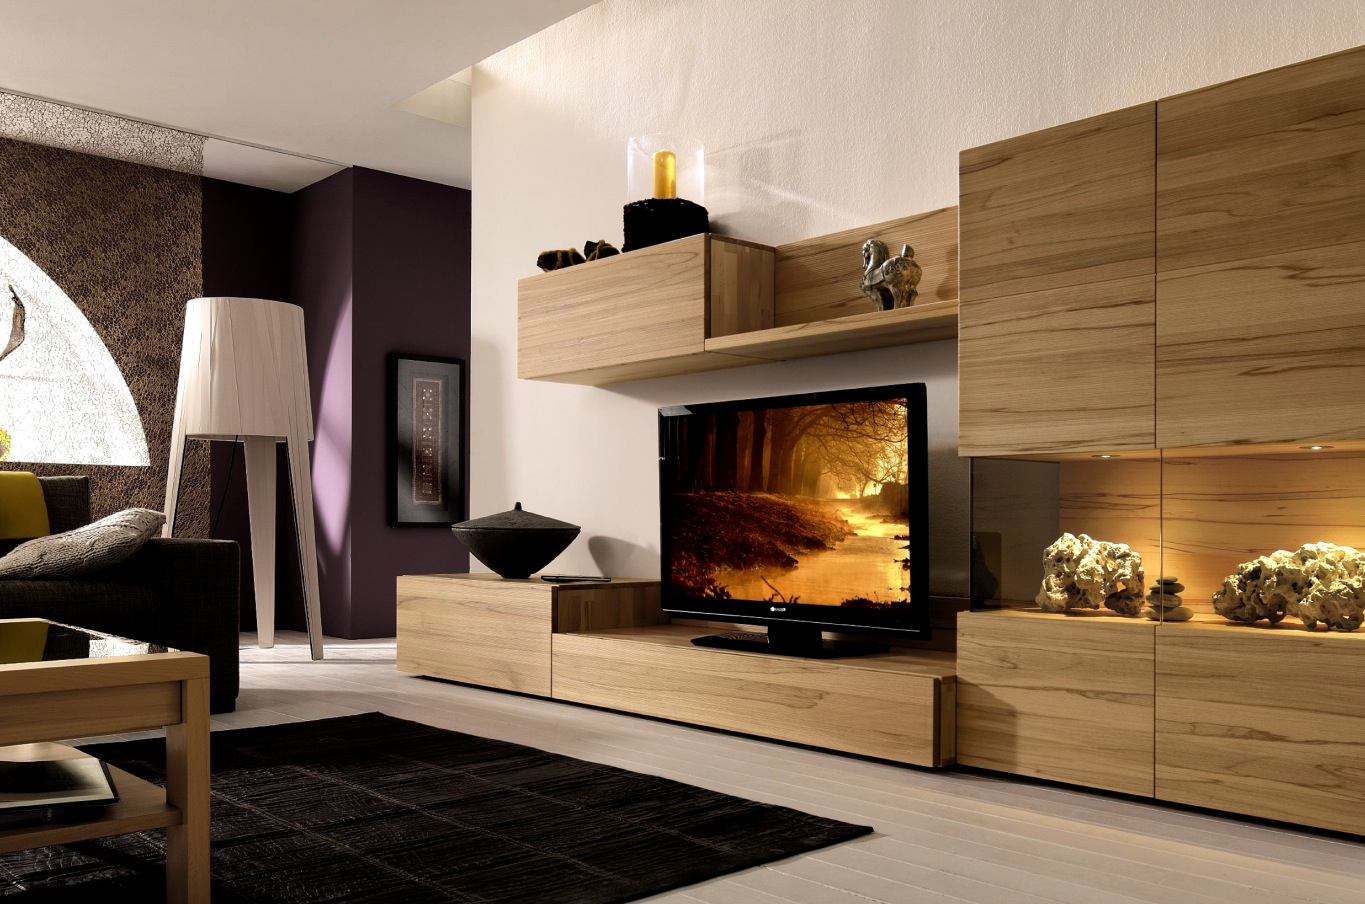 Modern Furniture Wall Units furniture wall units designs | home design ideas